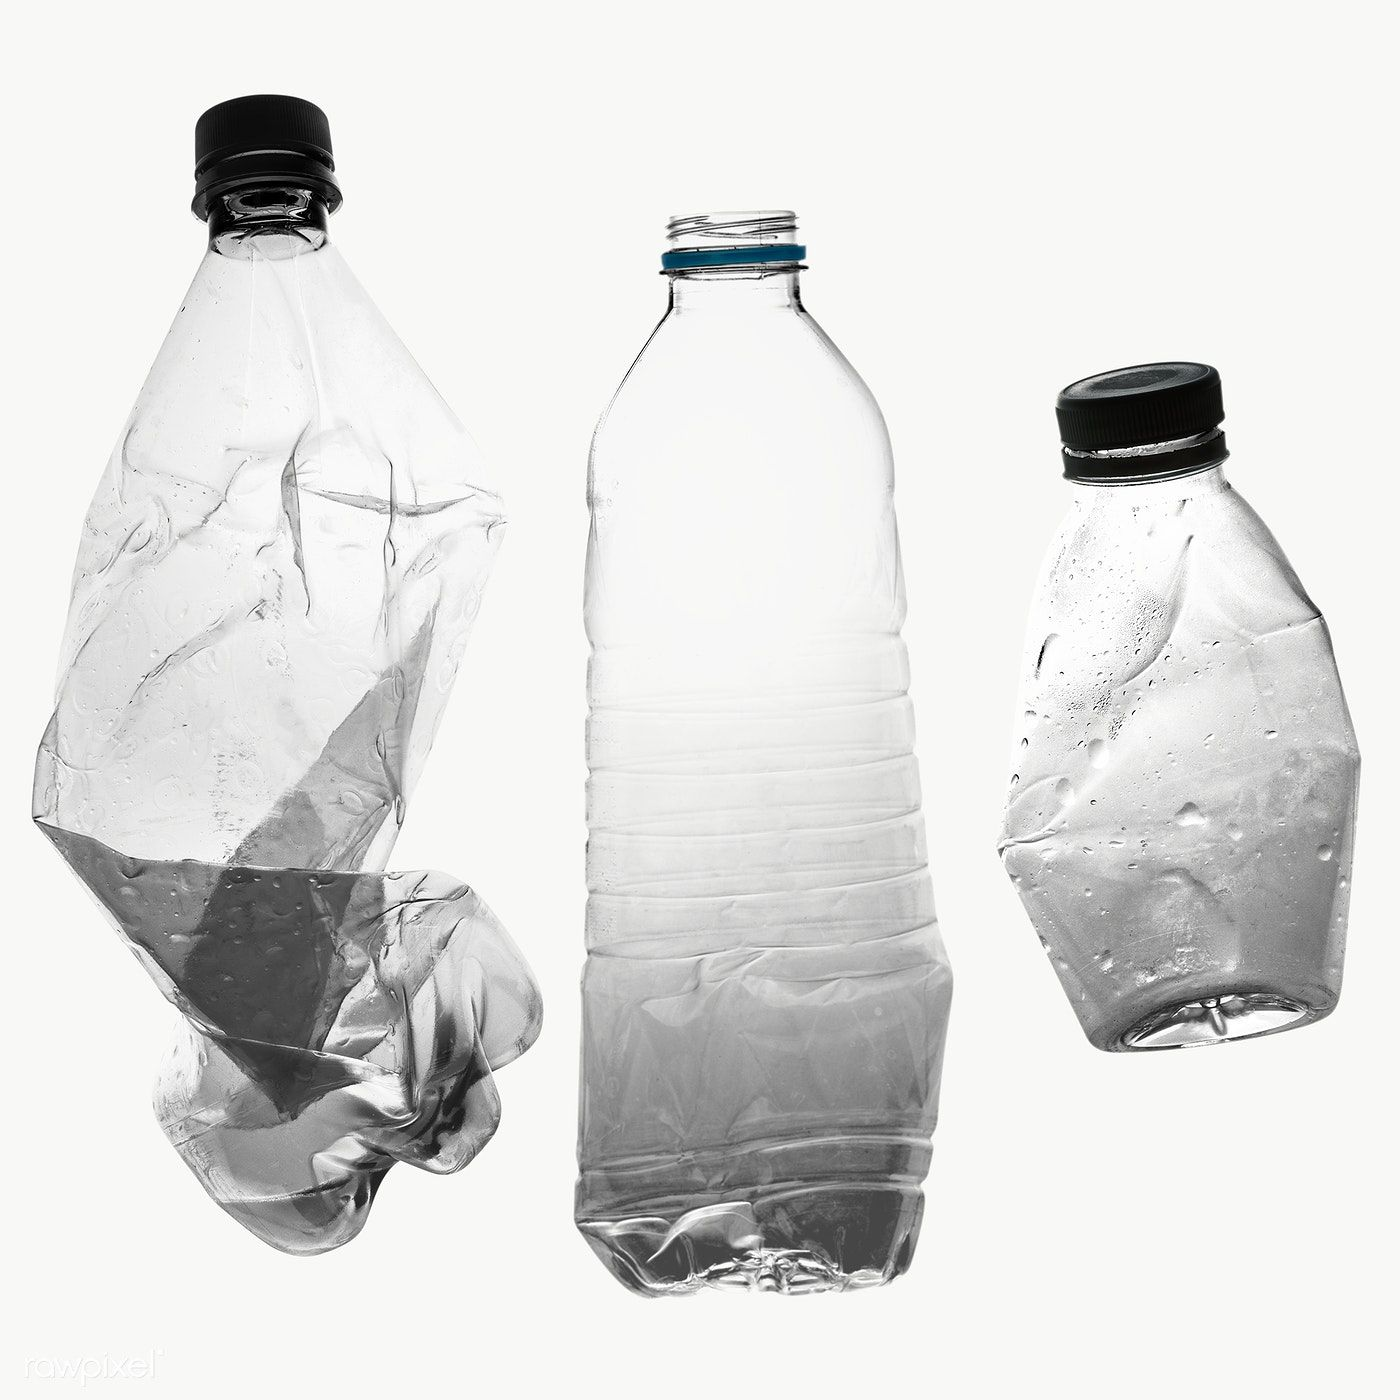 Crushed Plastic Bottles For Recycling Free Image By Rawpixel Com Teddy Rawpixel In 2021 Bottle Plastic Bottles Recycling